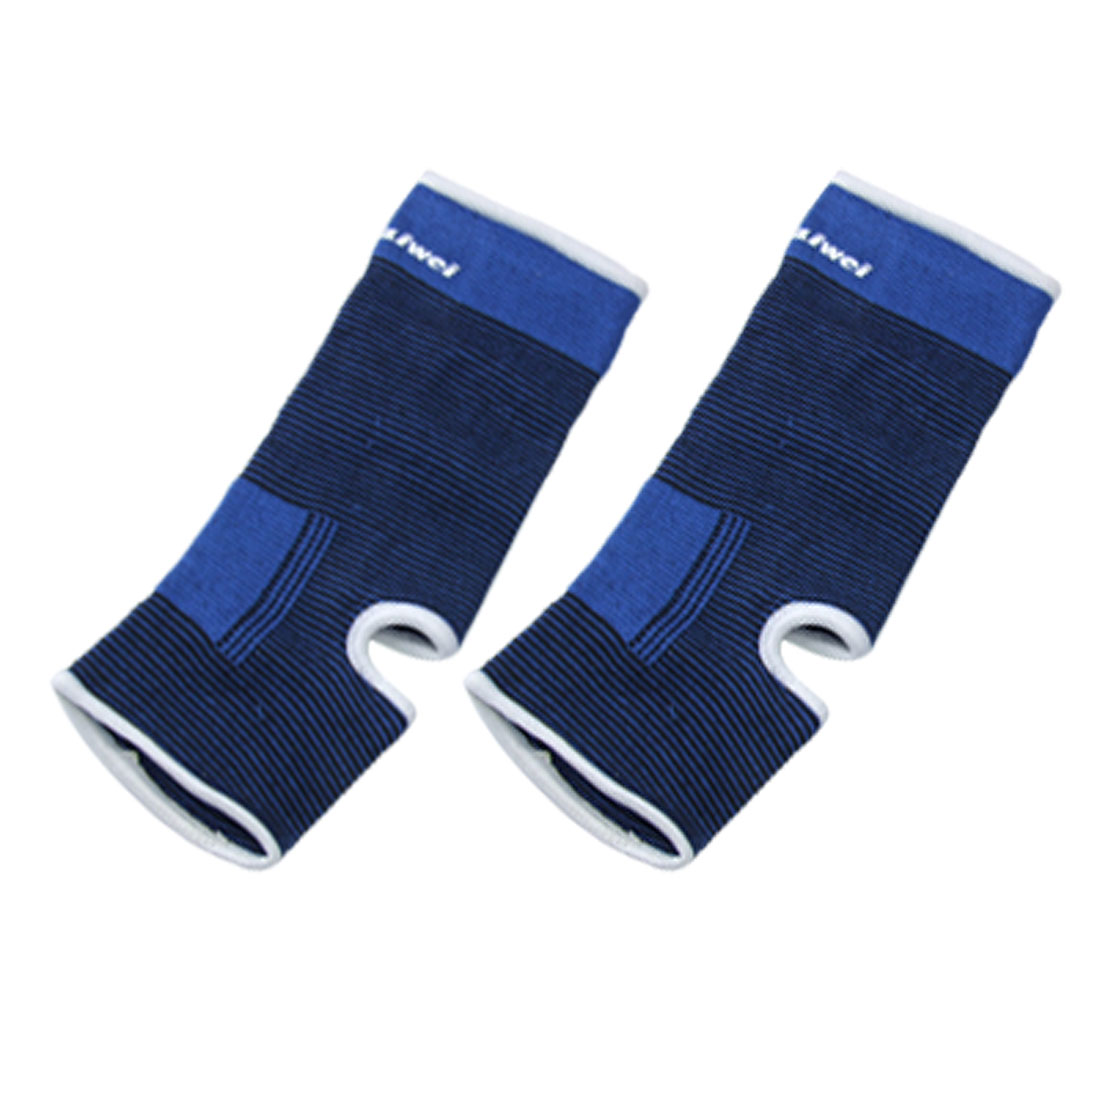 Pair Blue Black Elastic Cotton Ankle Support Protector Size S